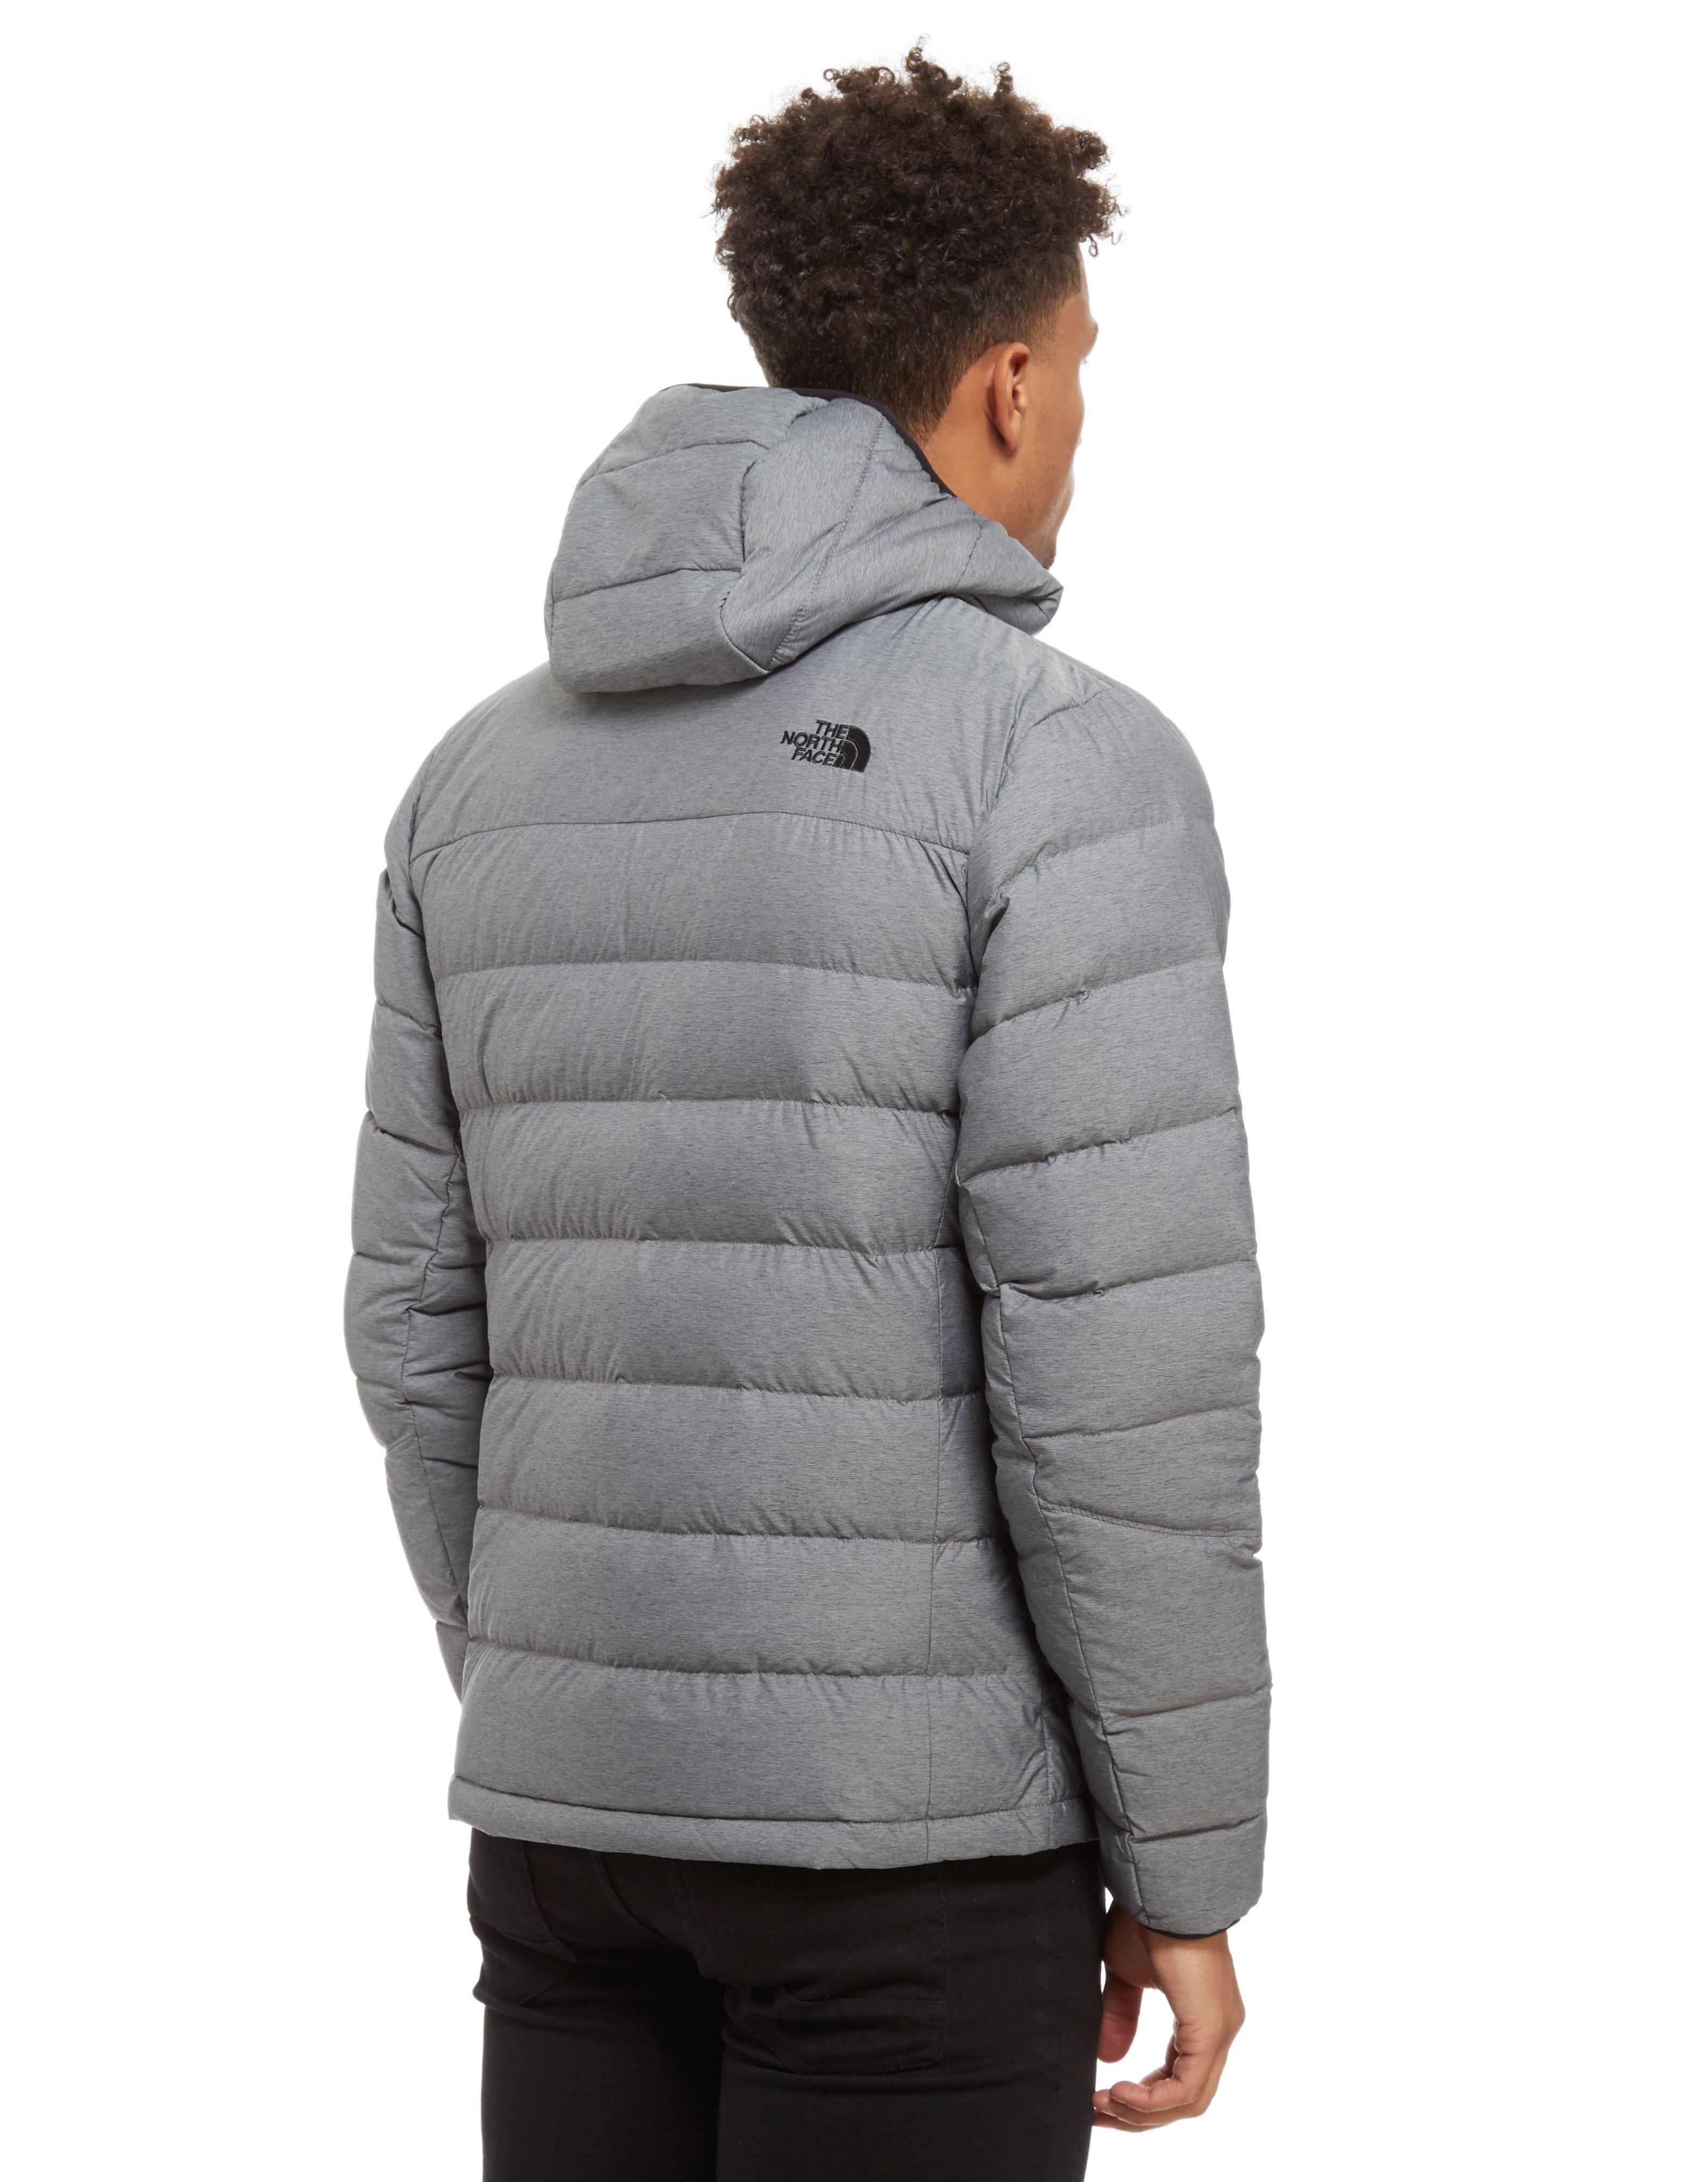 Lyst - The North Face Shark Down Padded Jacket in Gray for Men d531ae36f